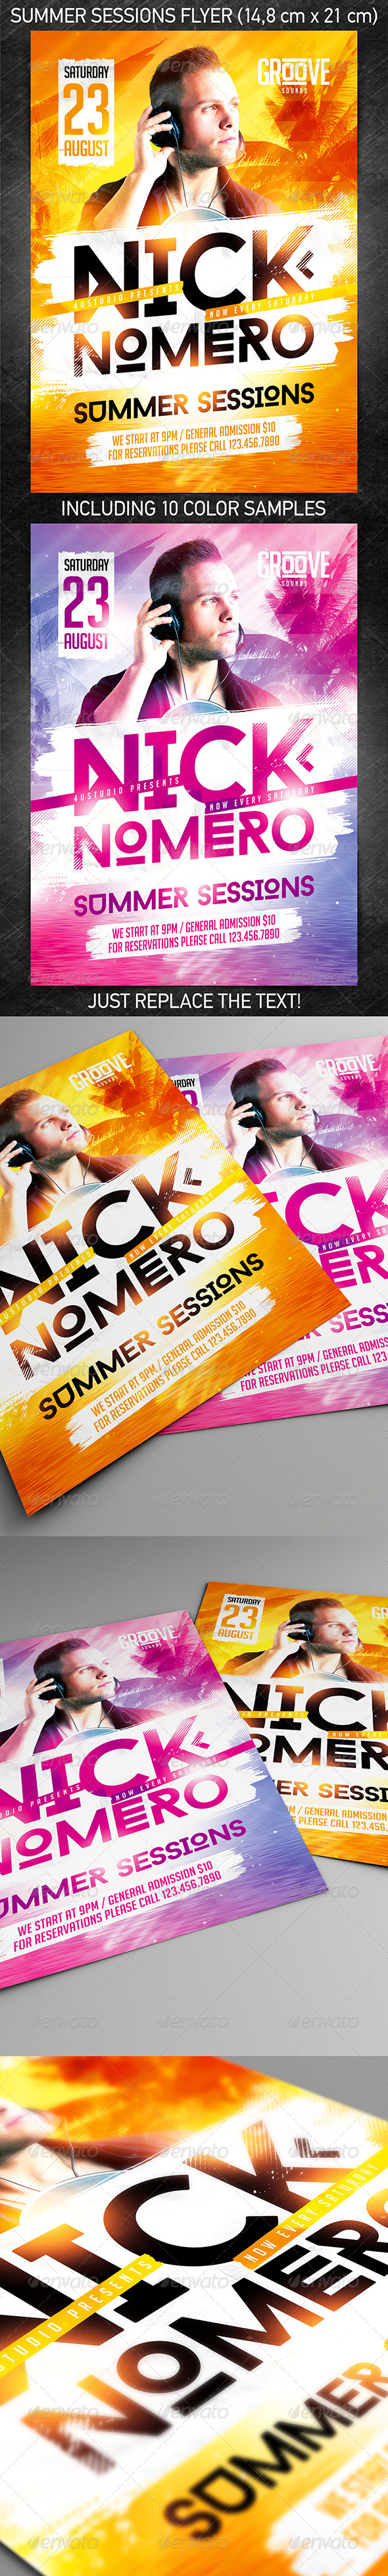 Summer Sessions Party Flyer - Events Flyers